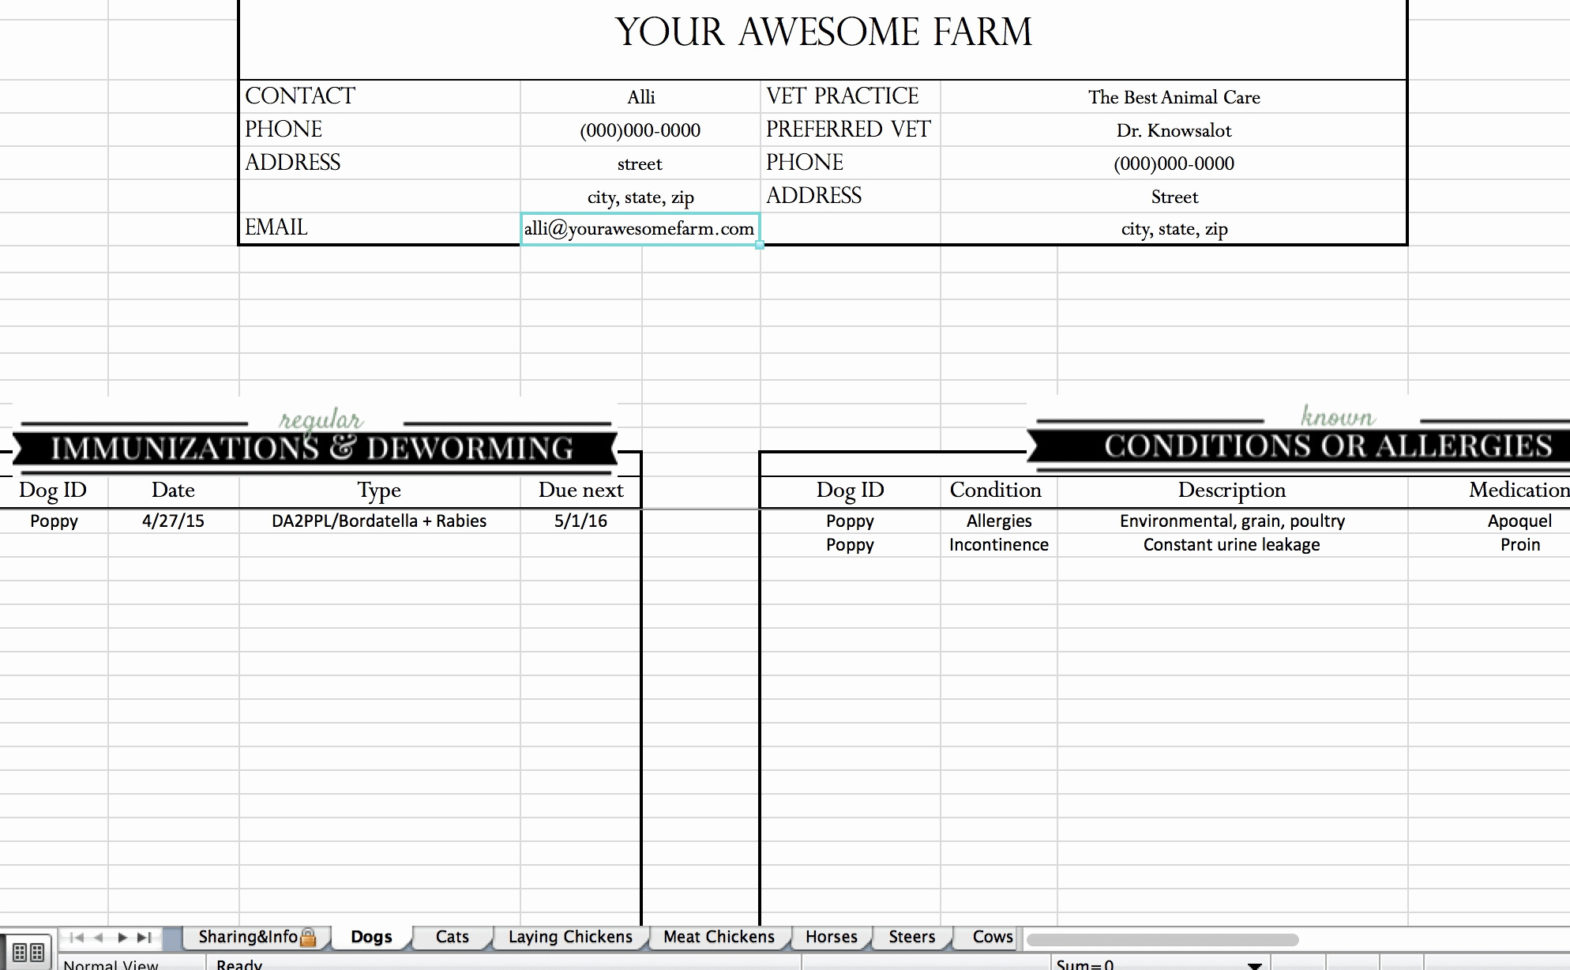 601 Waiver Processing Time Spreadsheet Within 601 Waiver Processing Time Spreadsheet – Spreadsheet Collections